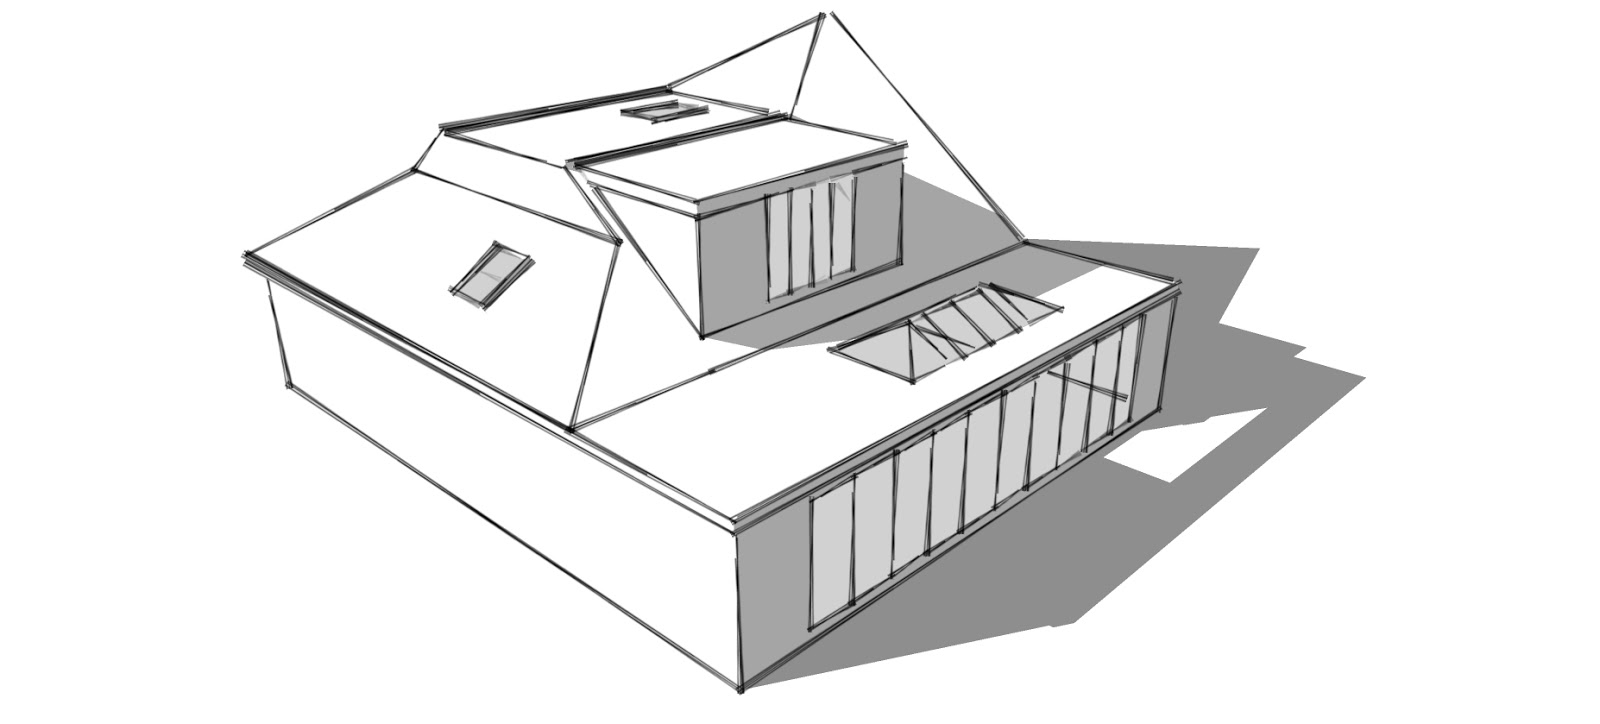 build my bungalow shortcut to architect plans and 3 d mock up i shortlisted a few architects but went with planmore planmore are based in bedfordshire so london wasn t too far them planmore came recommended to me